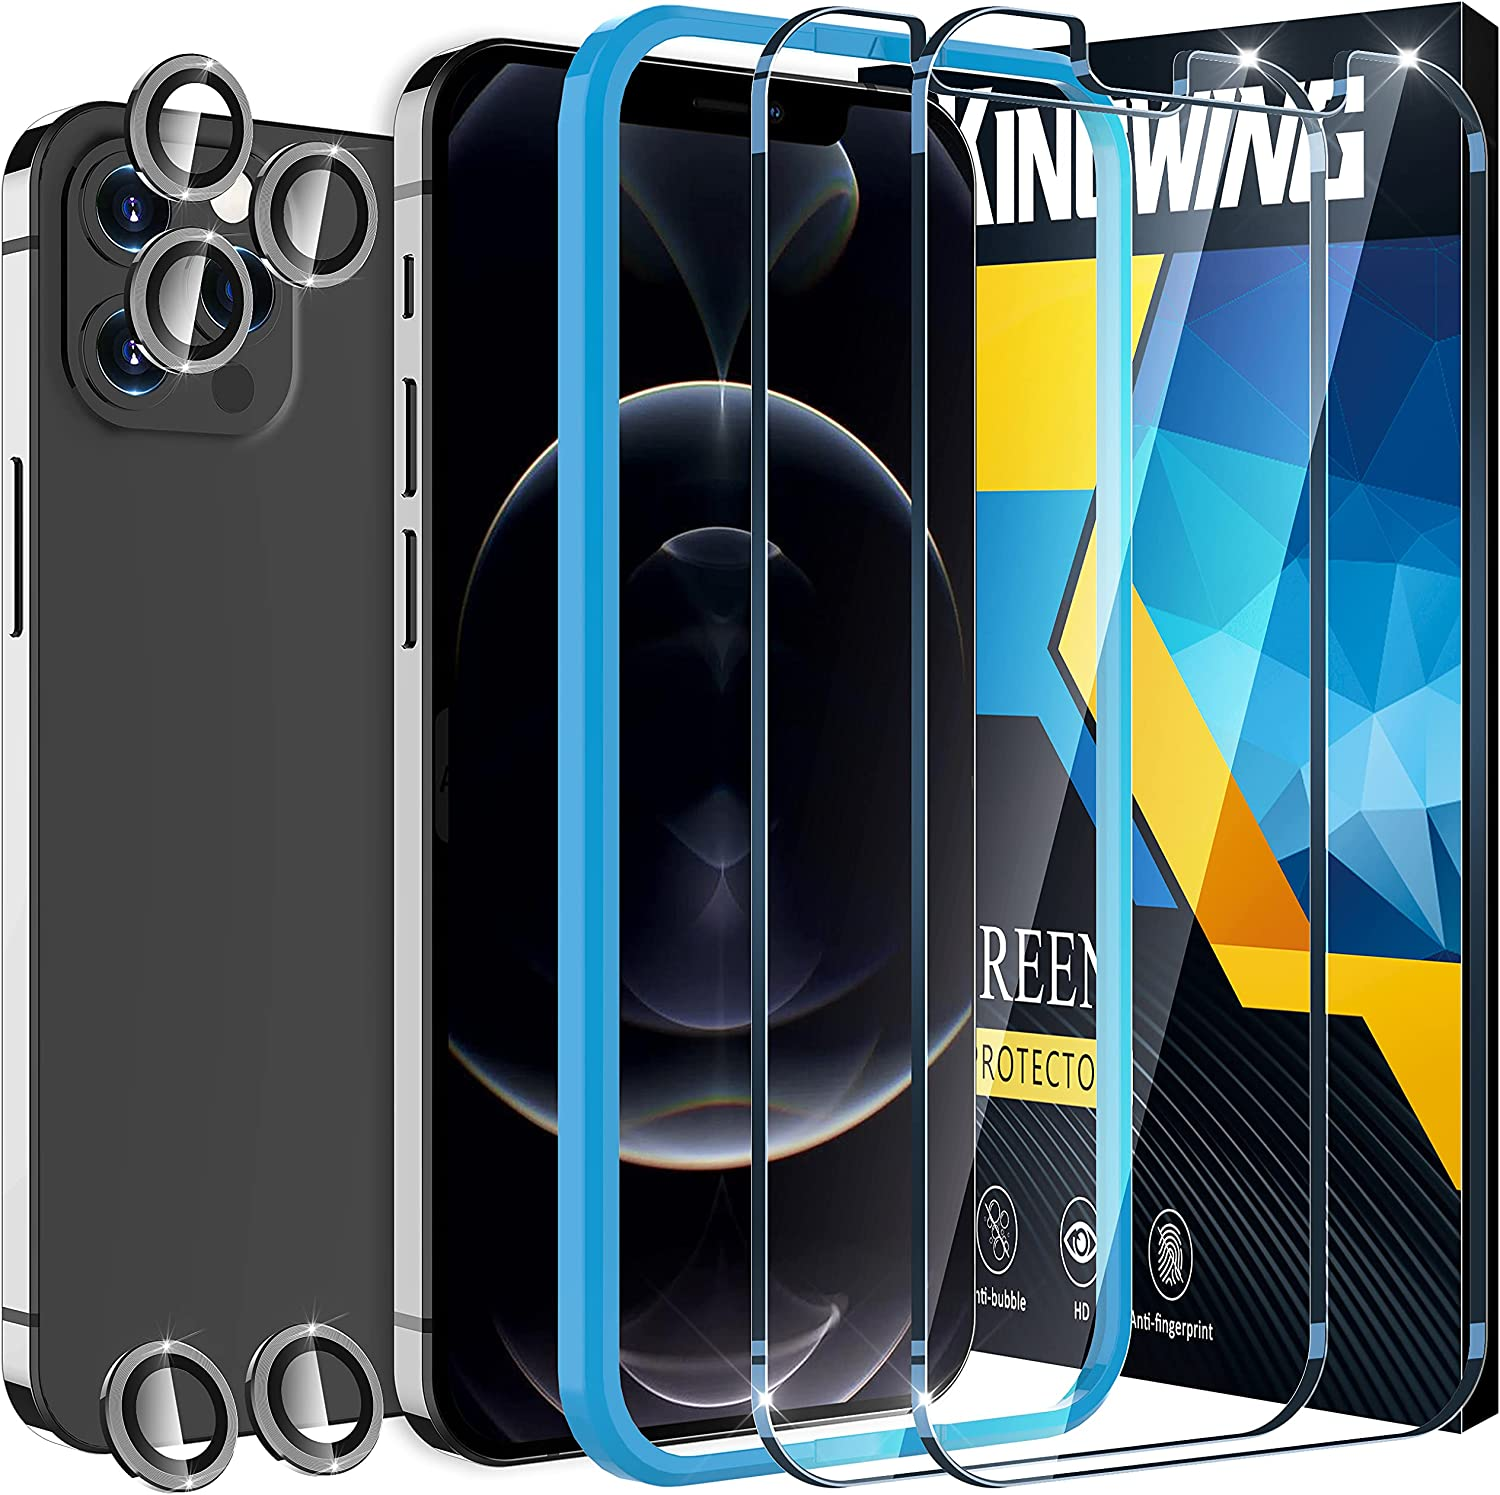 [2+5 Pack ] KINGWING Privacy Screen Protector Compatible with iPhone 12 Pro Max 5G (6.7 inch), 2 Pack Tempered Glass + 5 Pack Camera Lens Protector [Installation Frame] [U-Shaped Cutout] (Graphite)